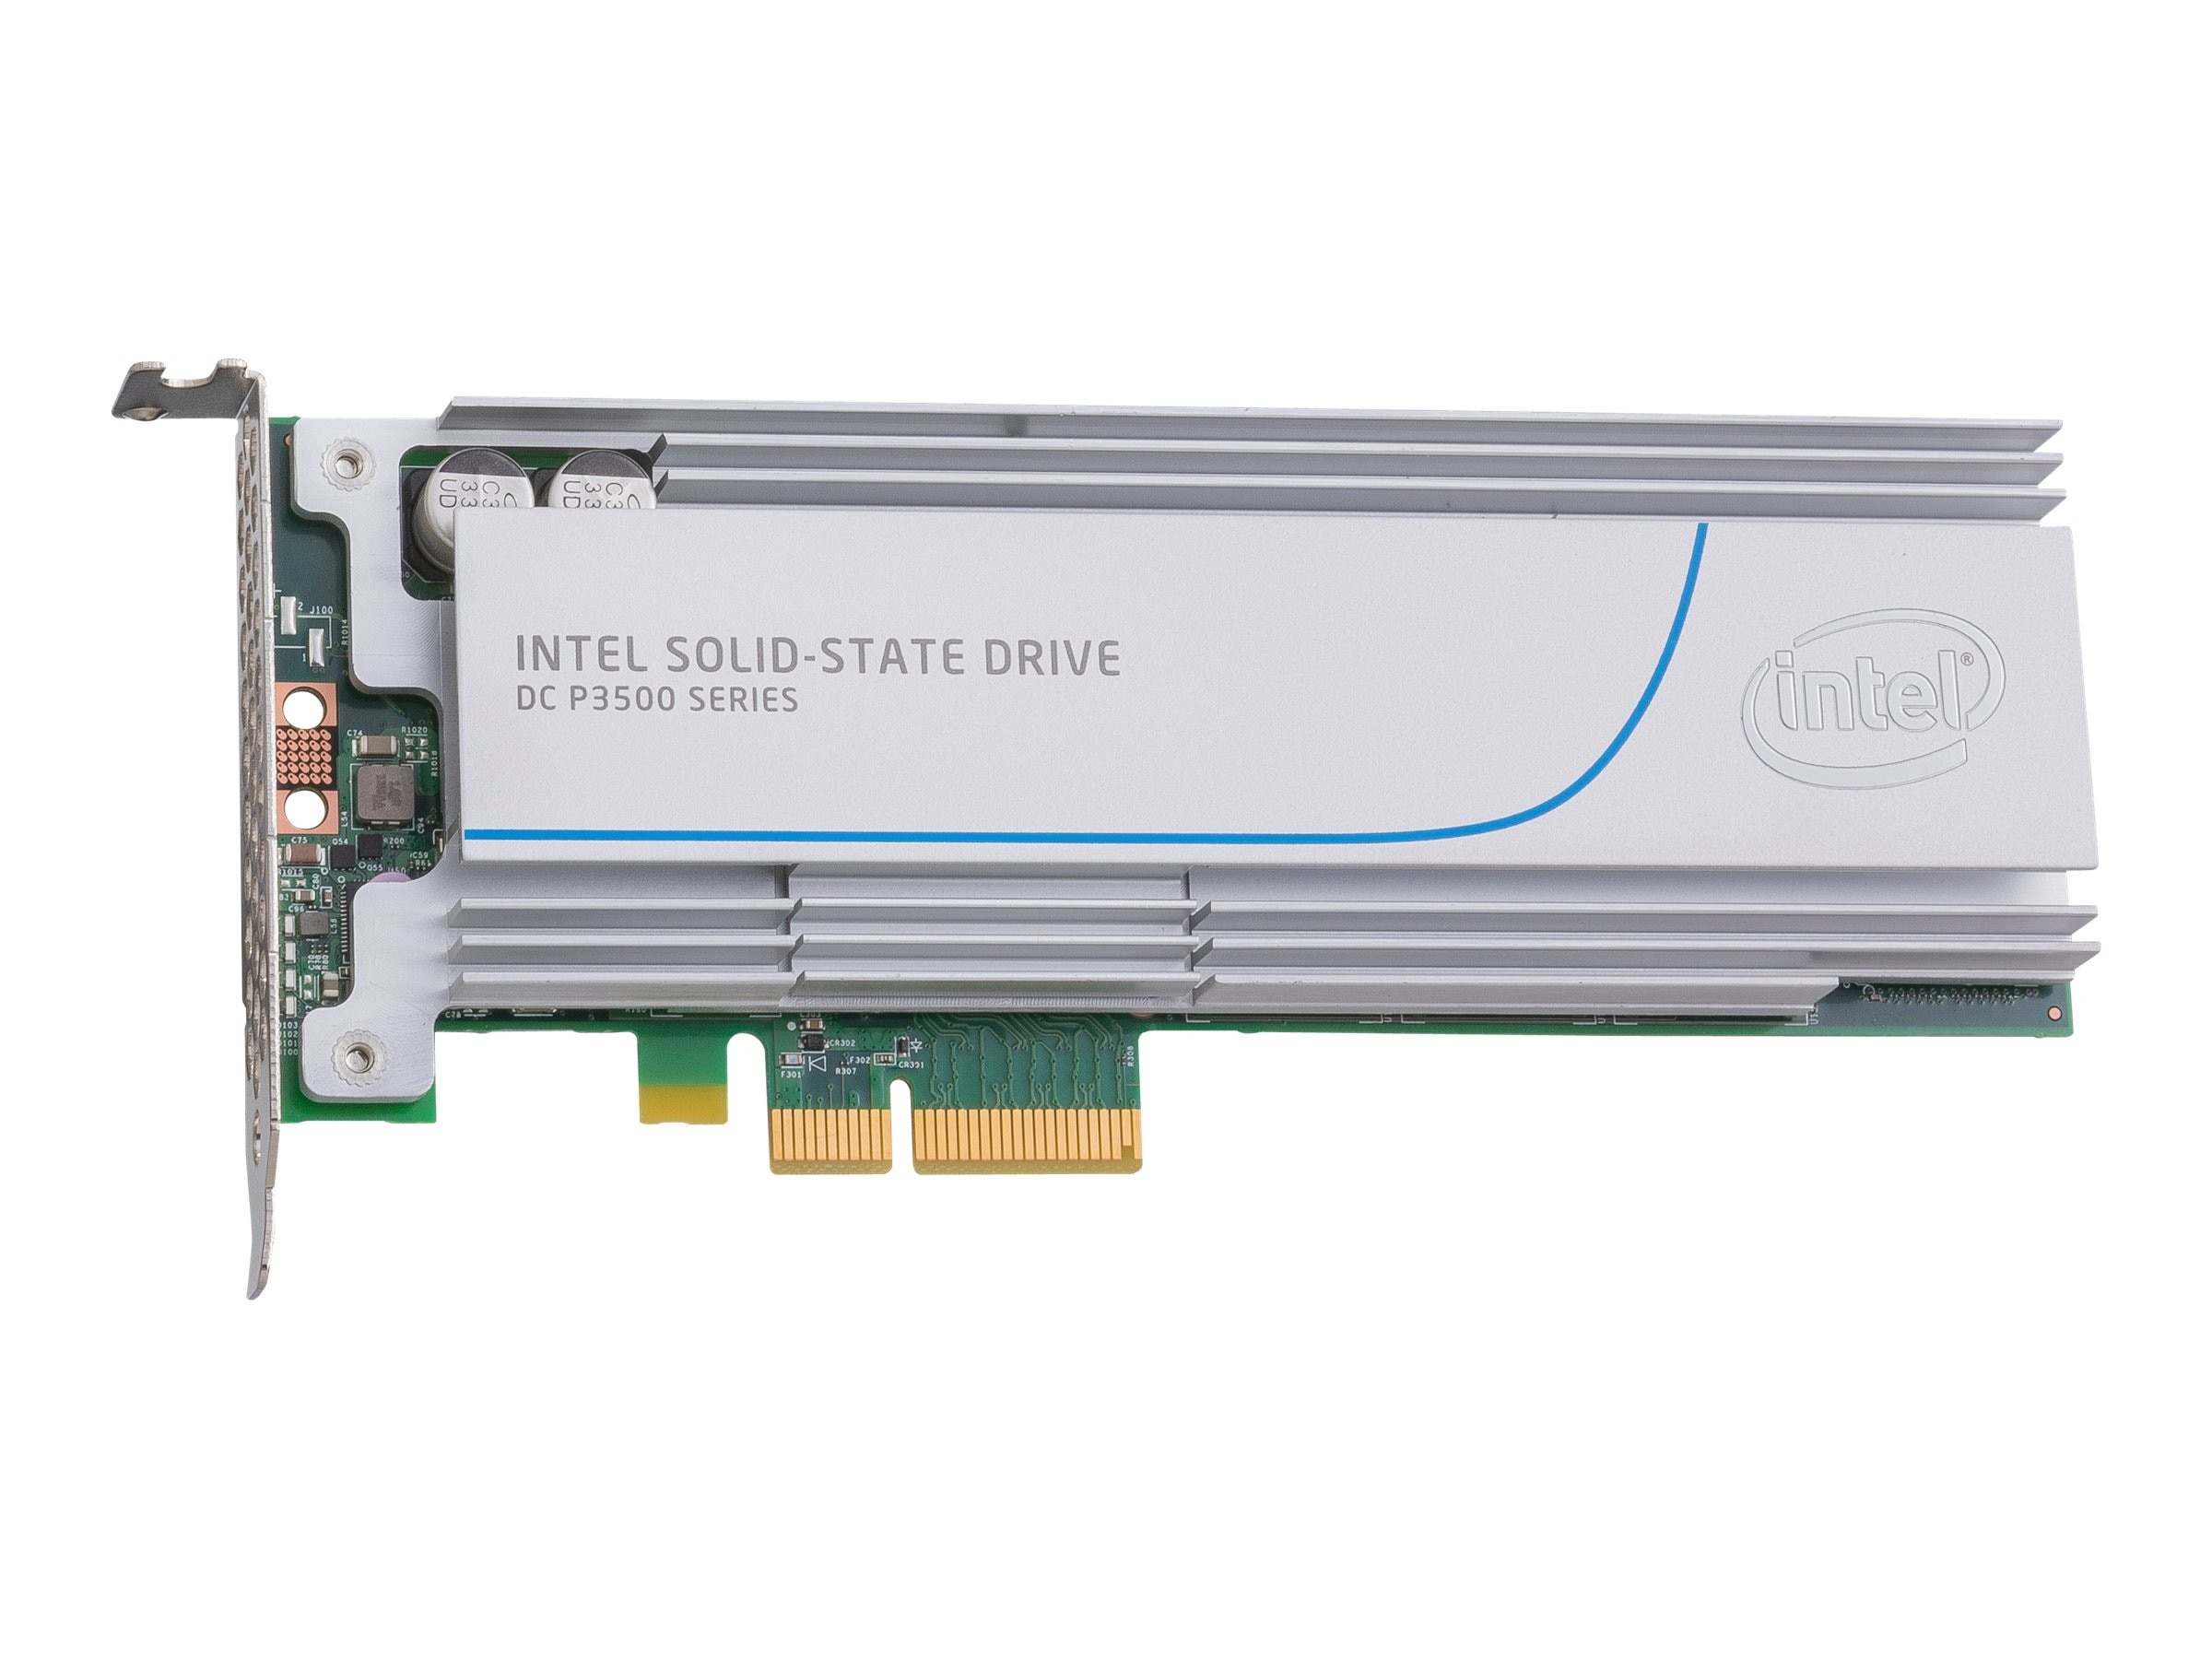 Intel 400GB DC P3500 Series Half Height Solid State Drive, SSDPEDMX400G410, 20137856, Solid State Drives - Internal